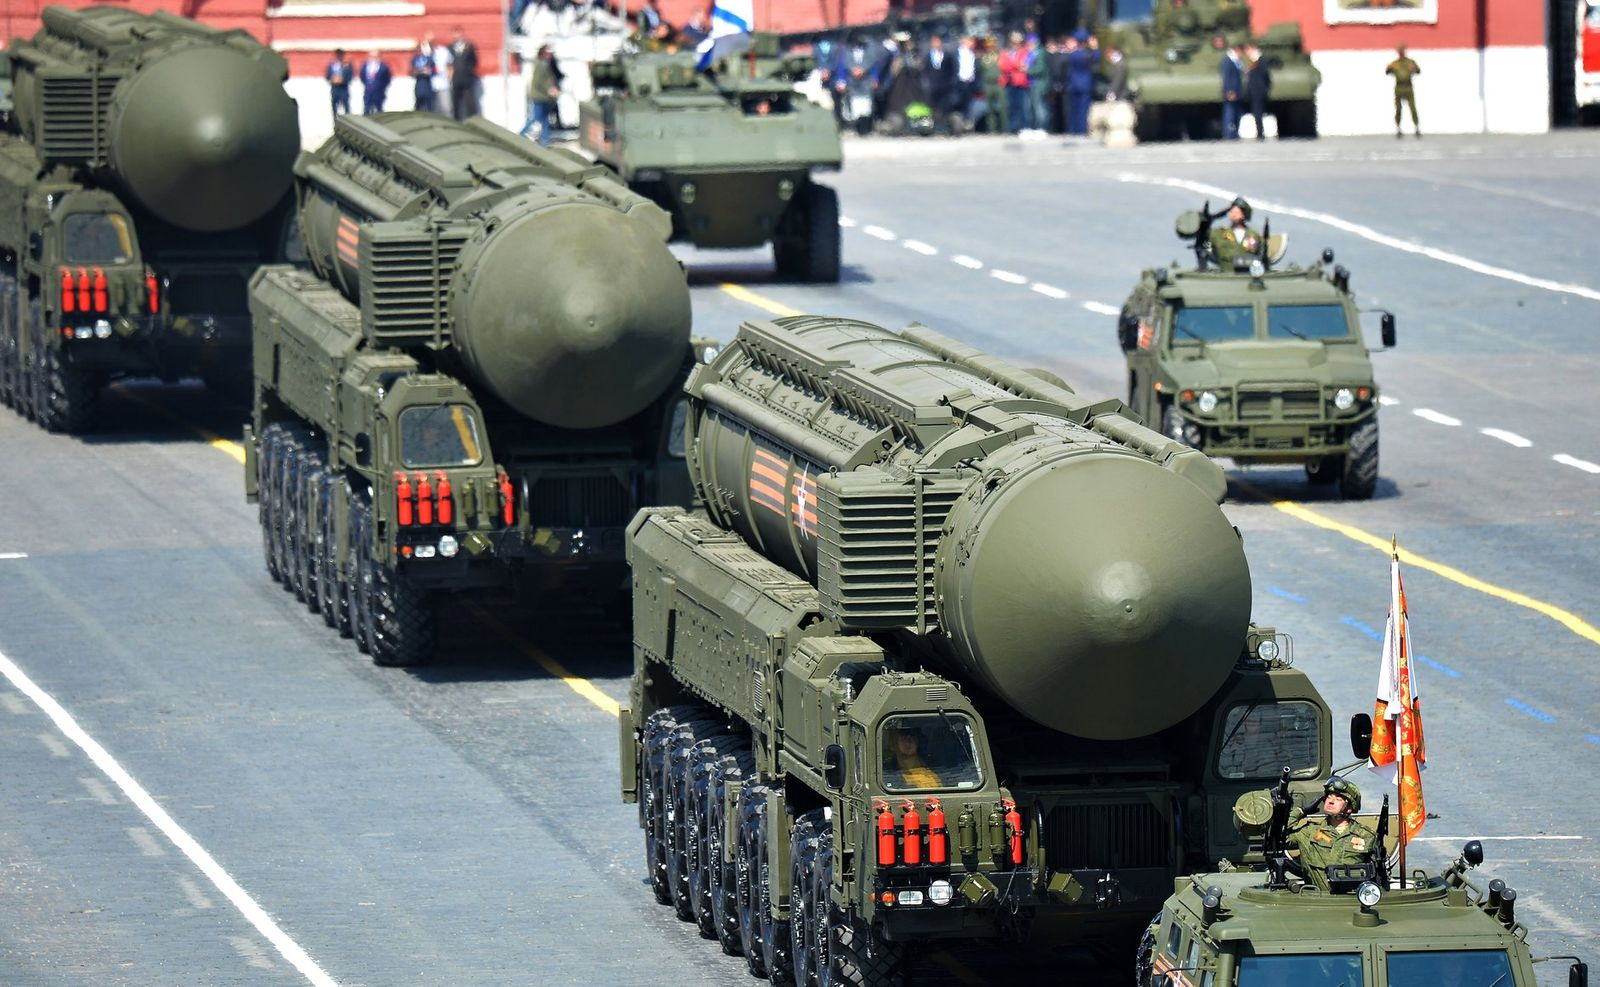 Russia's Massive Nuclear Weapons Arsenal Is a Threat